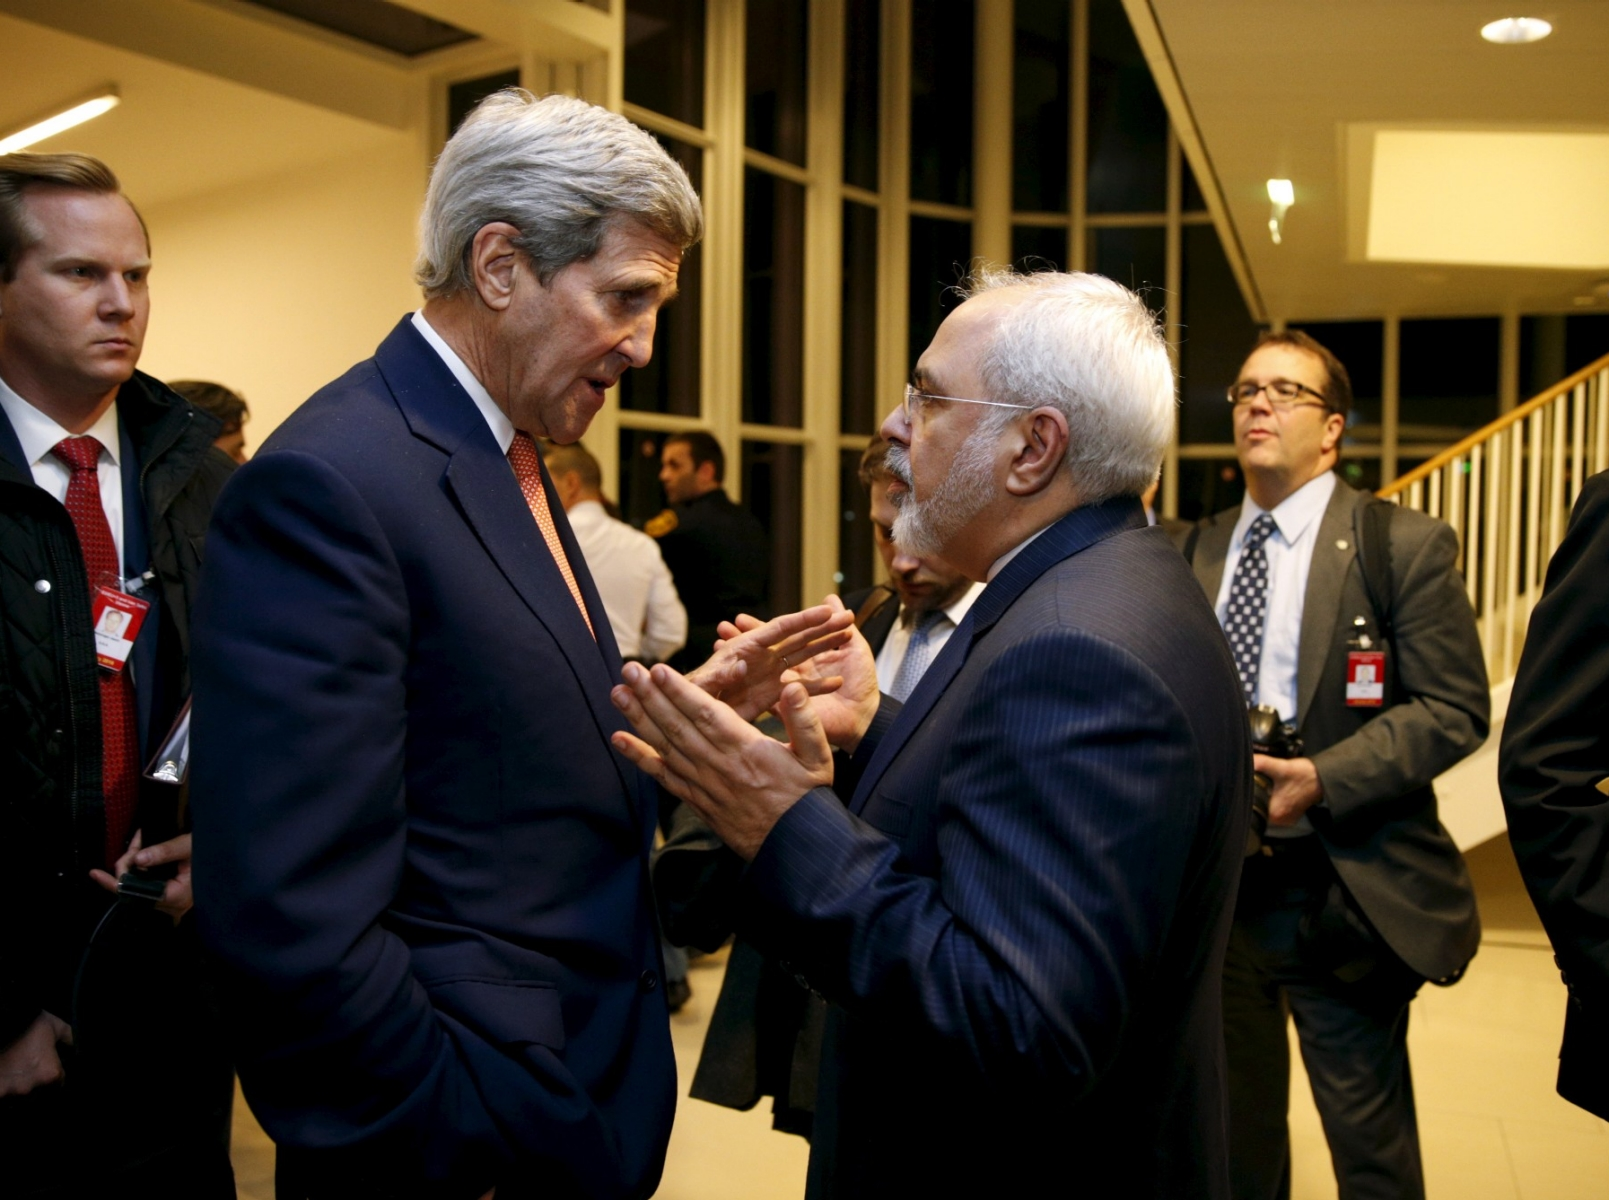 A moment of serious talk between former US Secretary of State John Kerry and Iranian Foreign Minister Mohammed Jawad Darif (Getty)